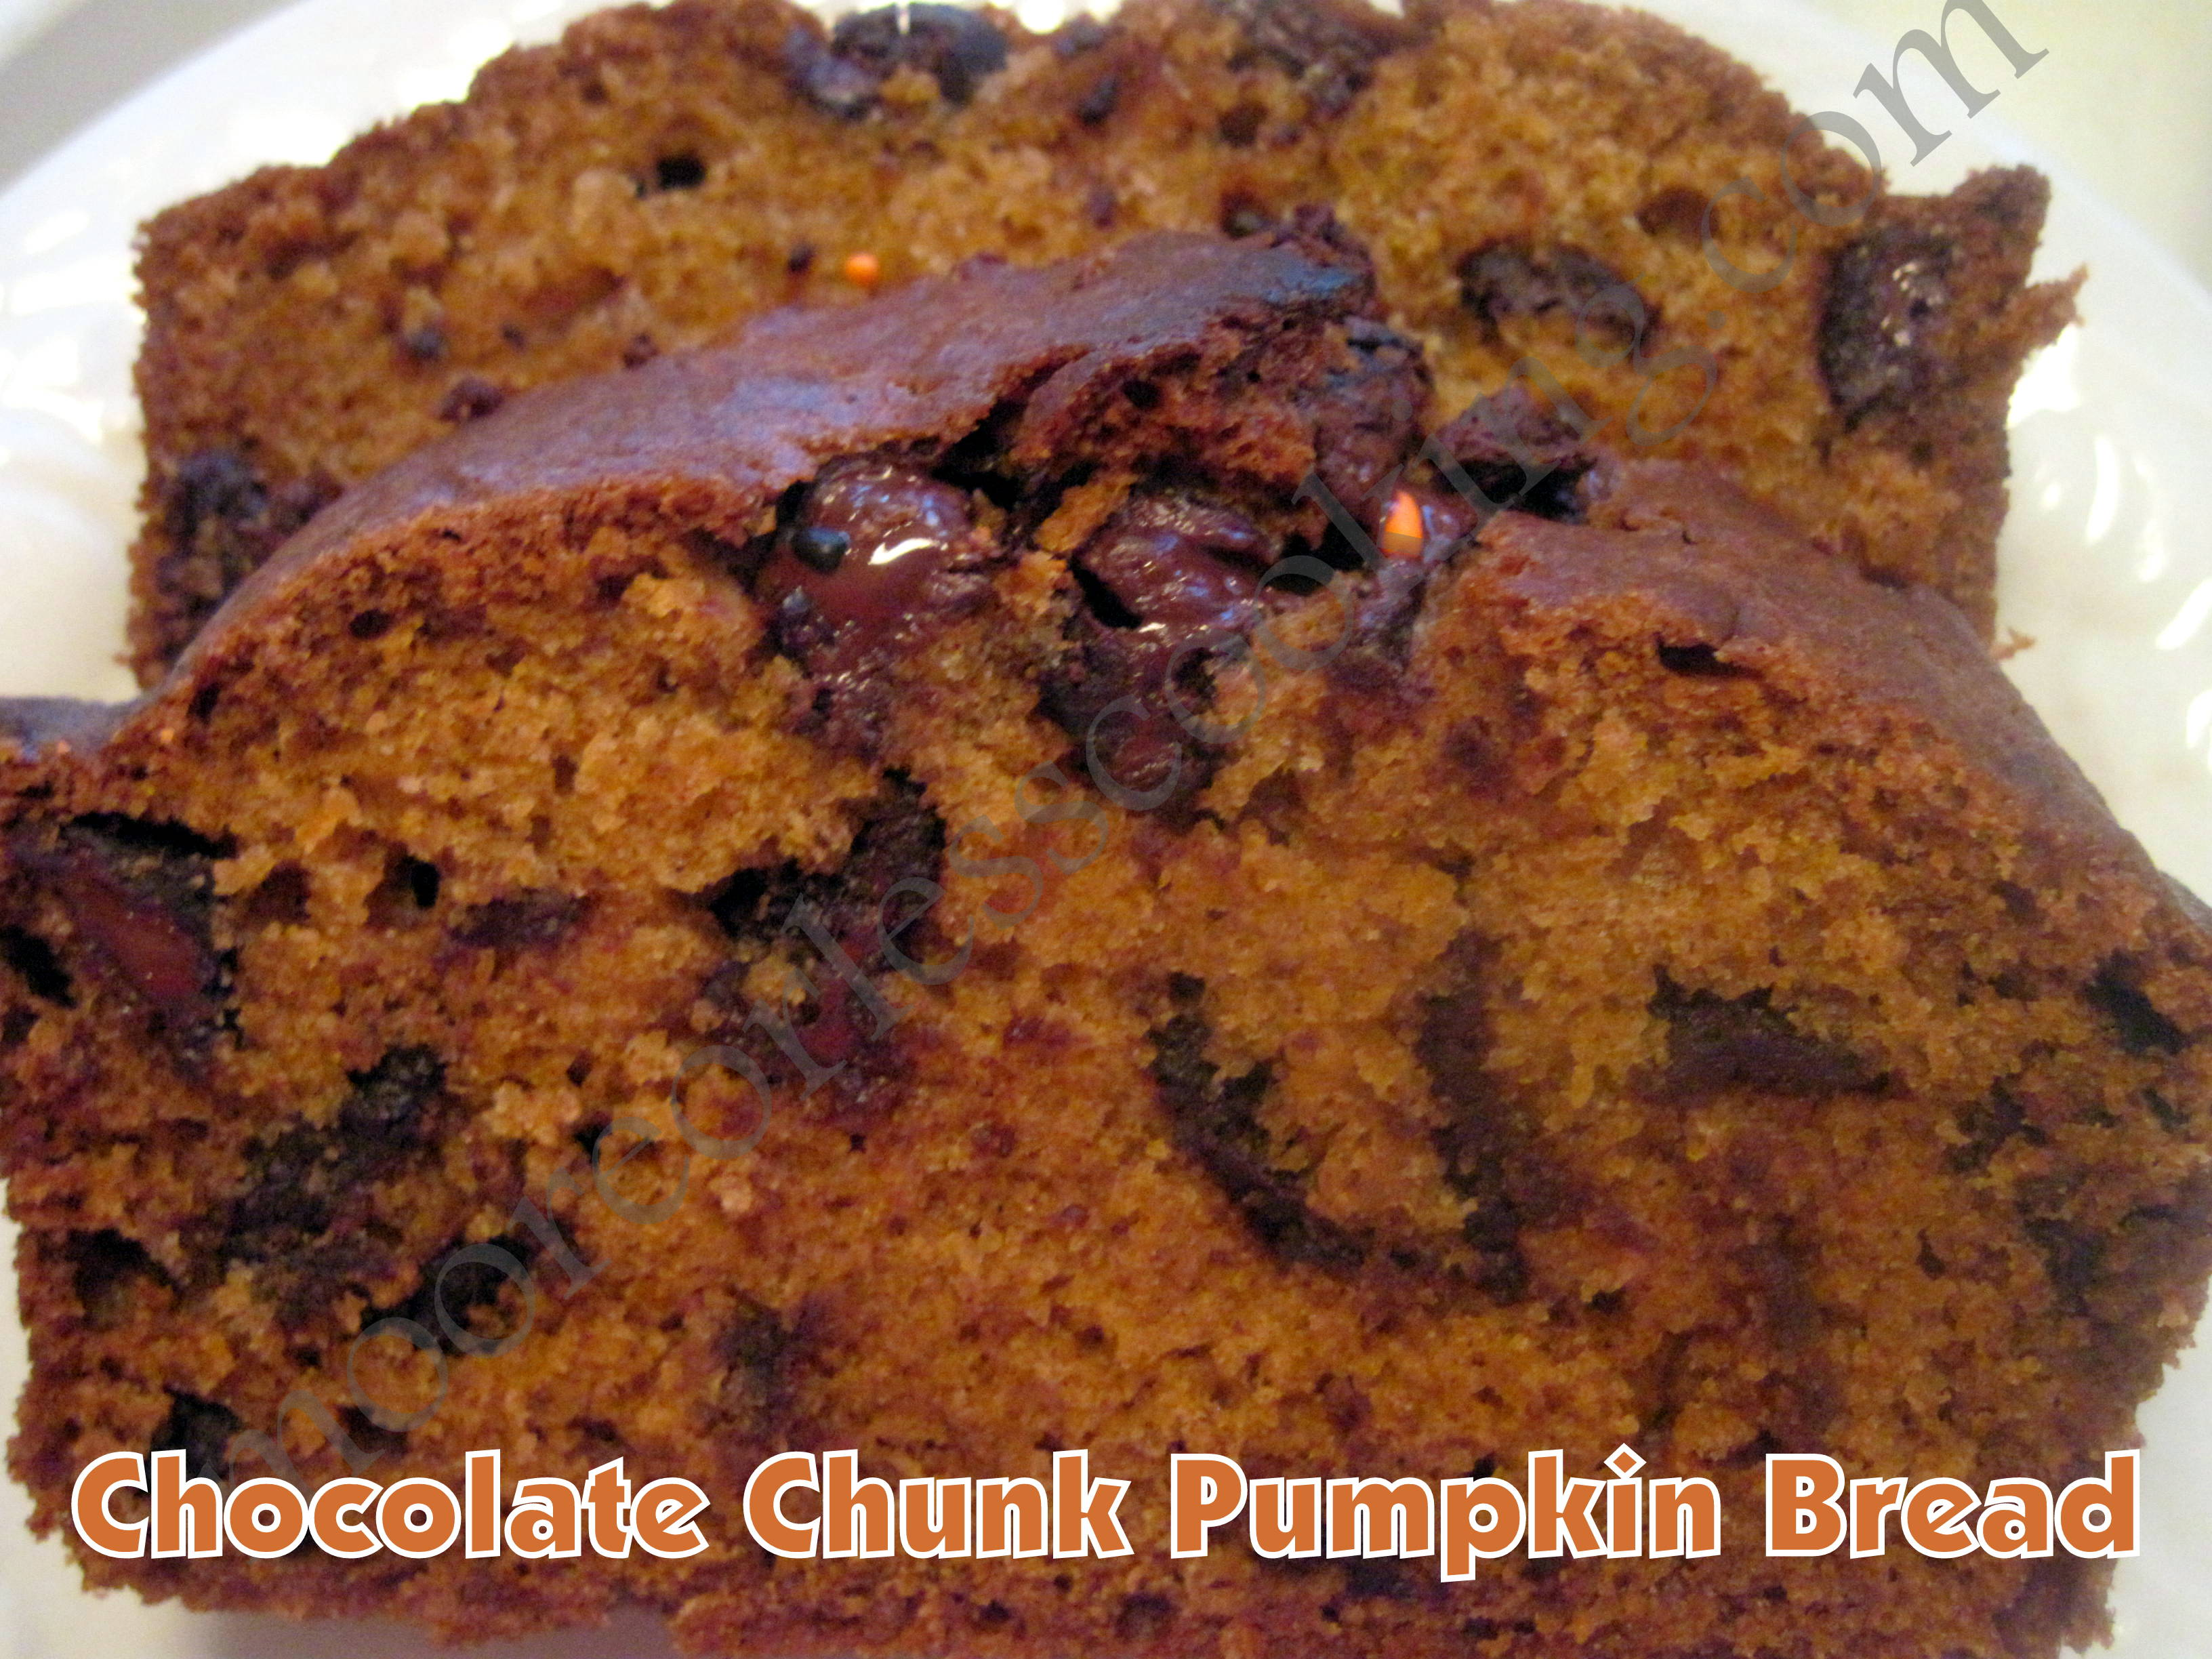 Chocolate Chunk Pumpkin Bread